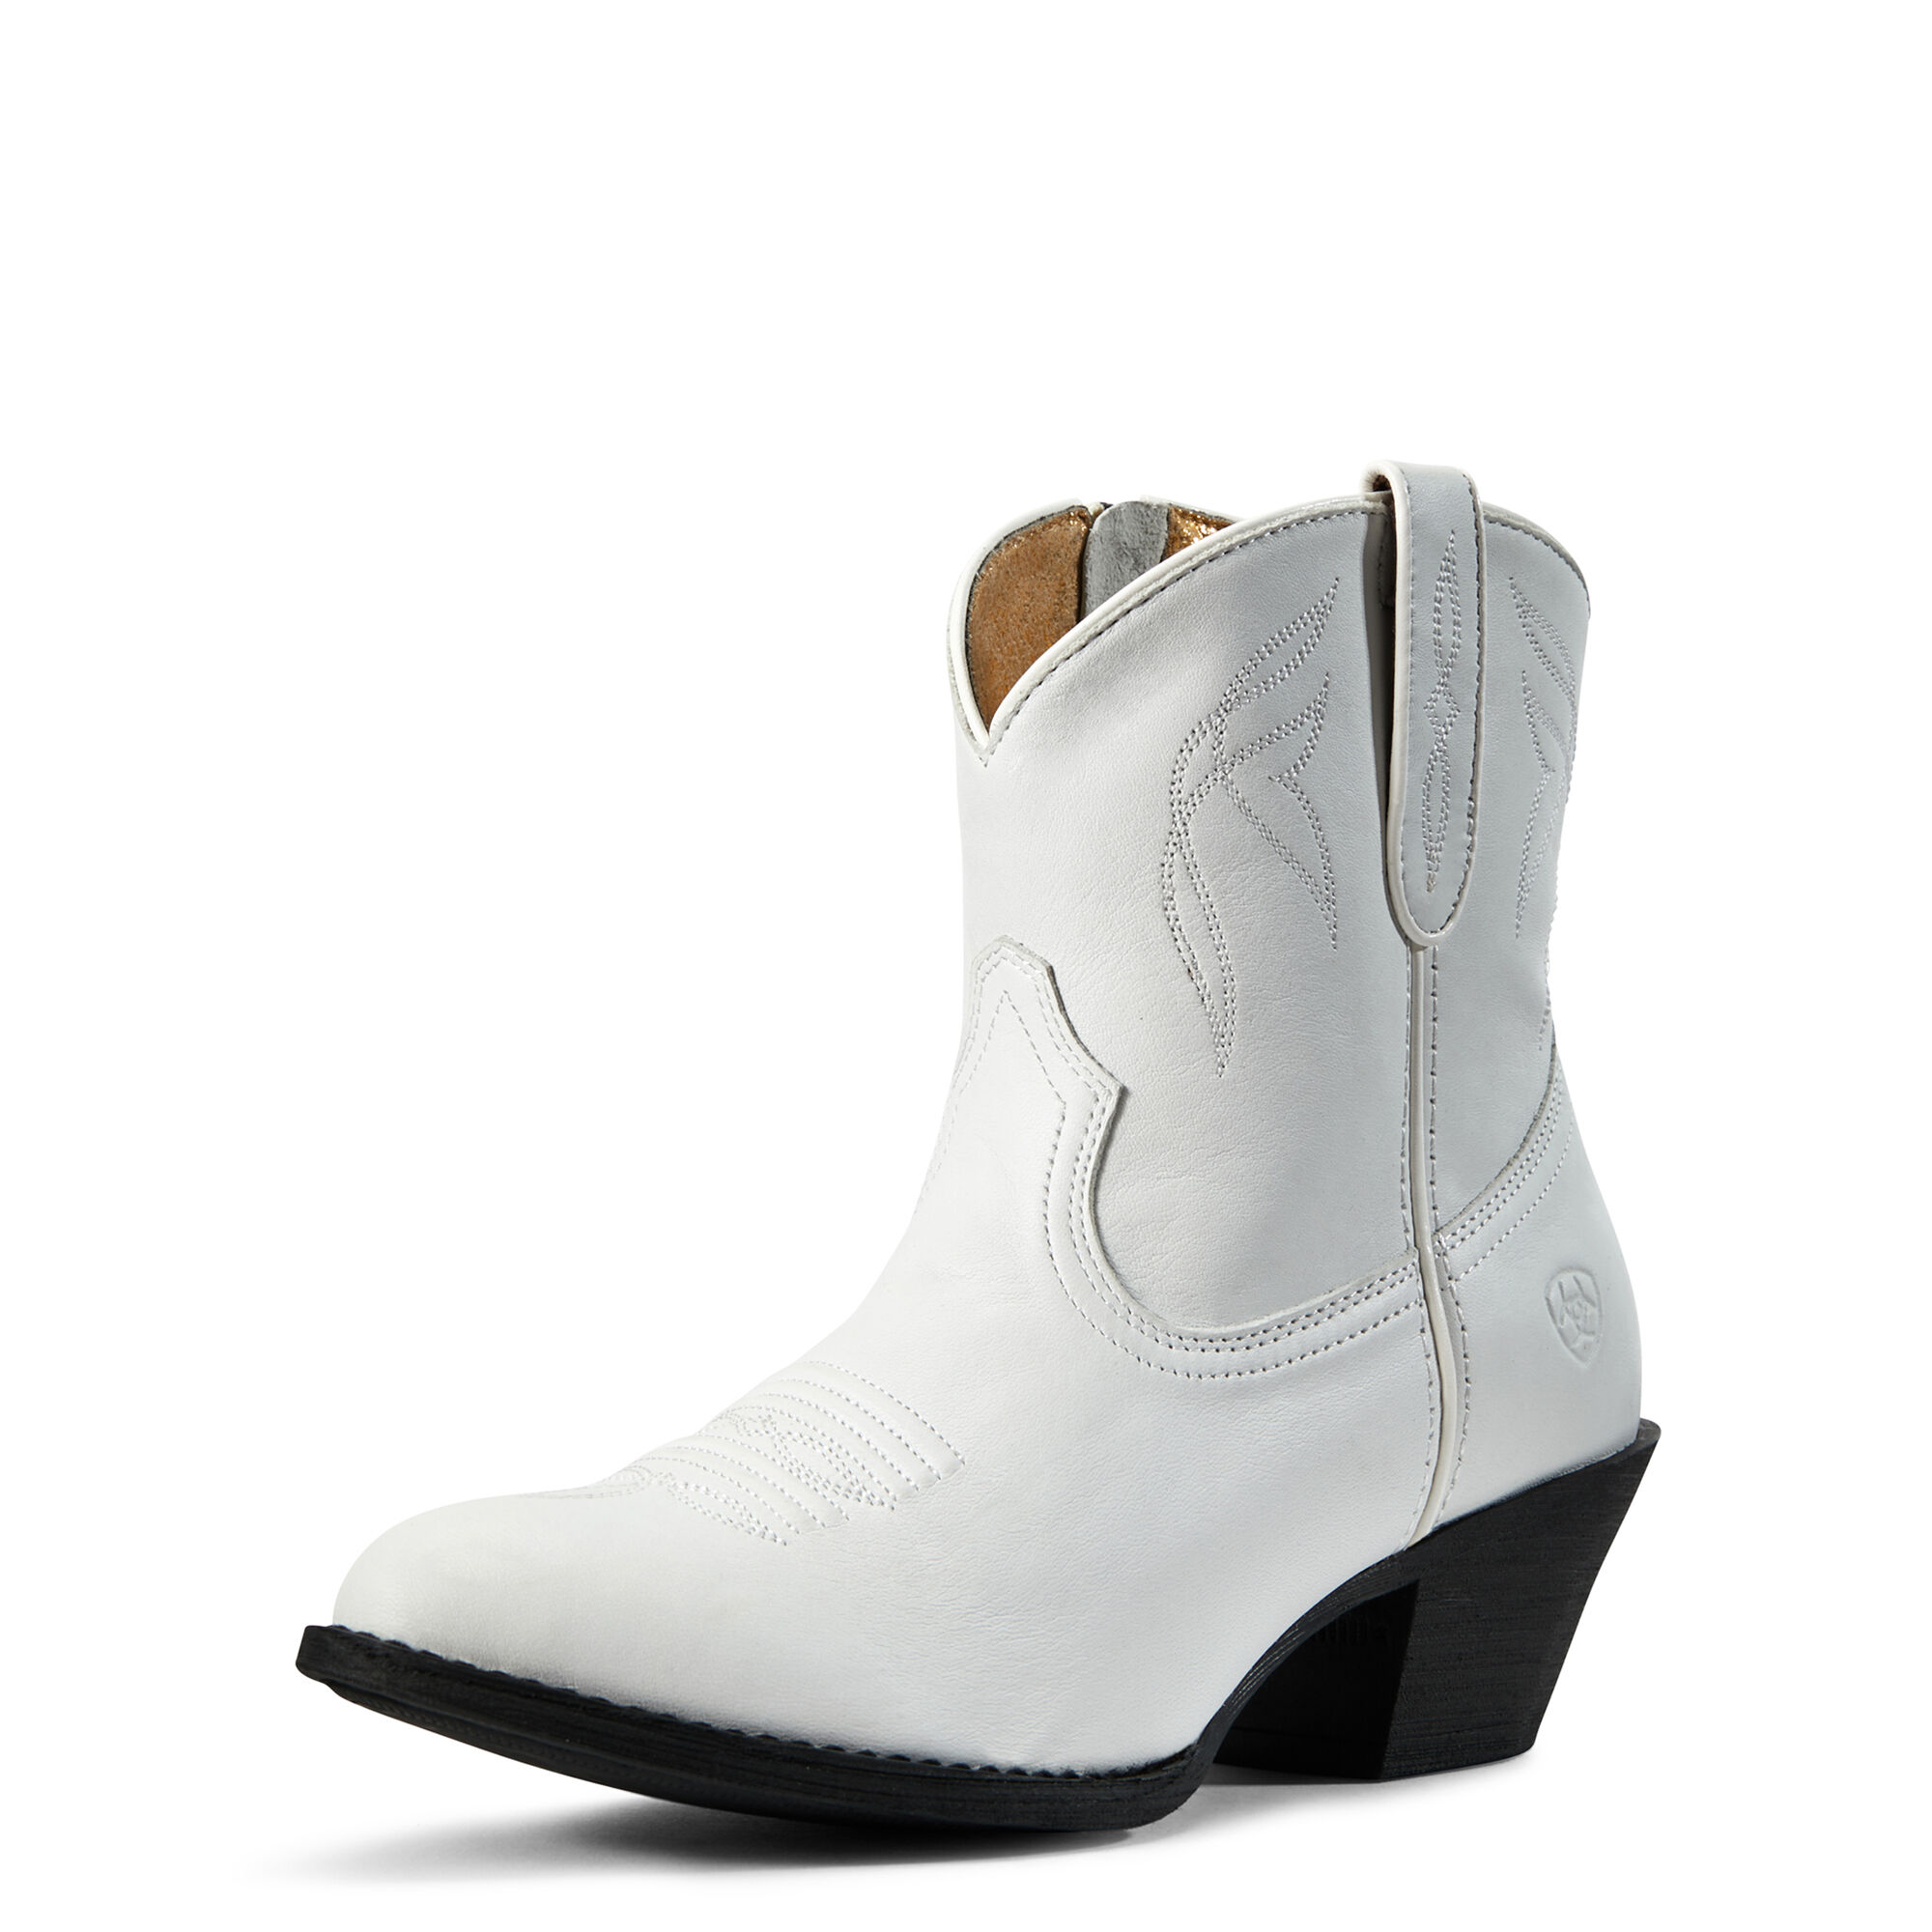 Women's Darlin Western Boots in White Leather by Ariat